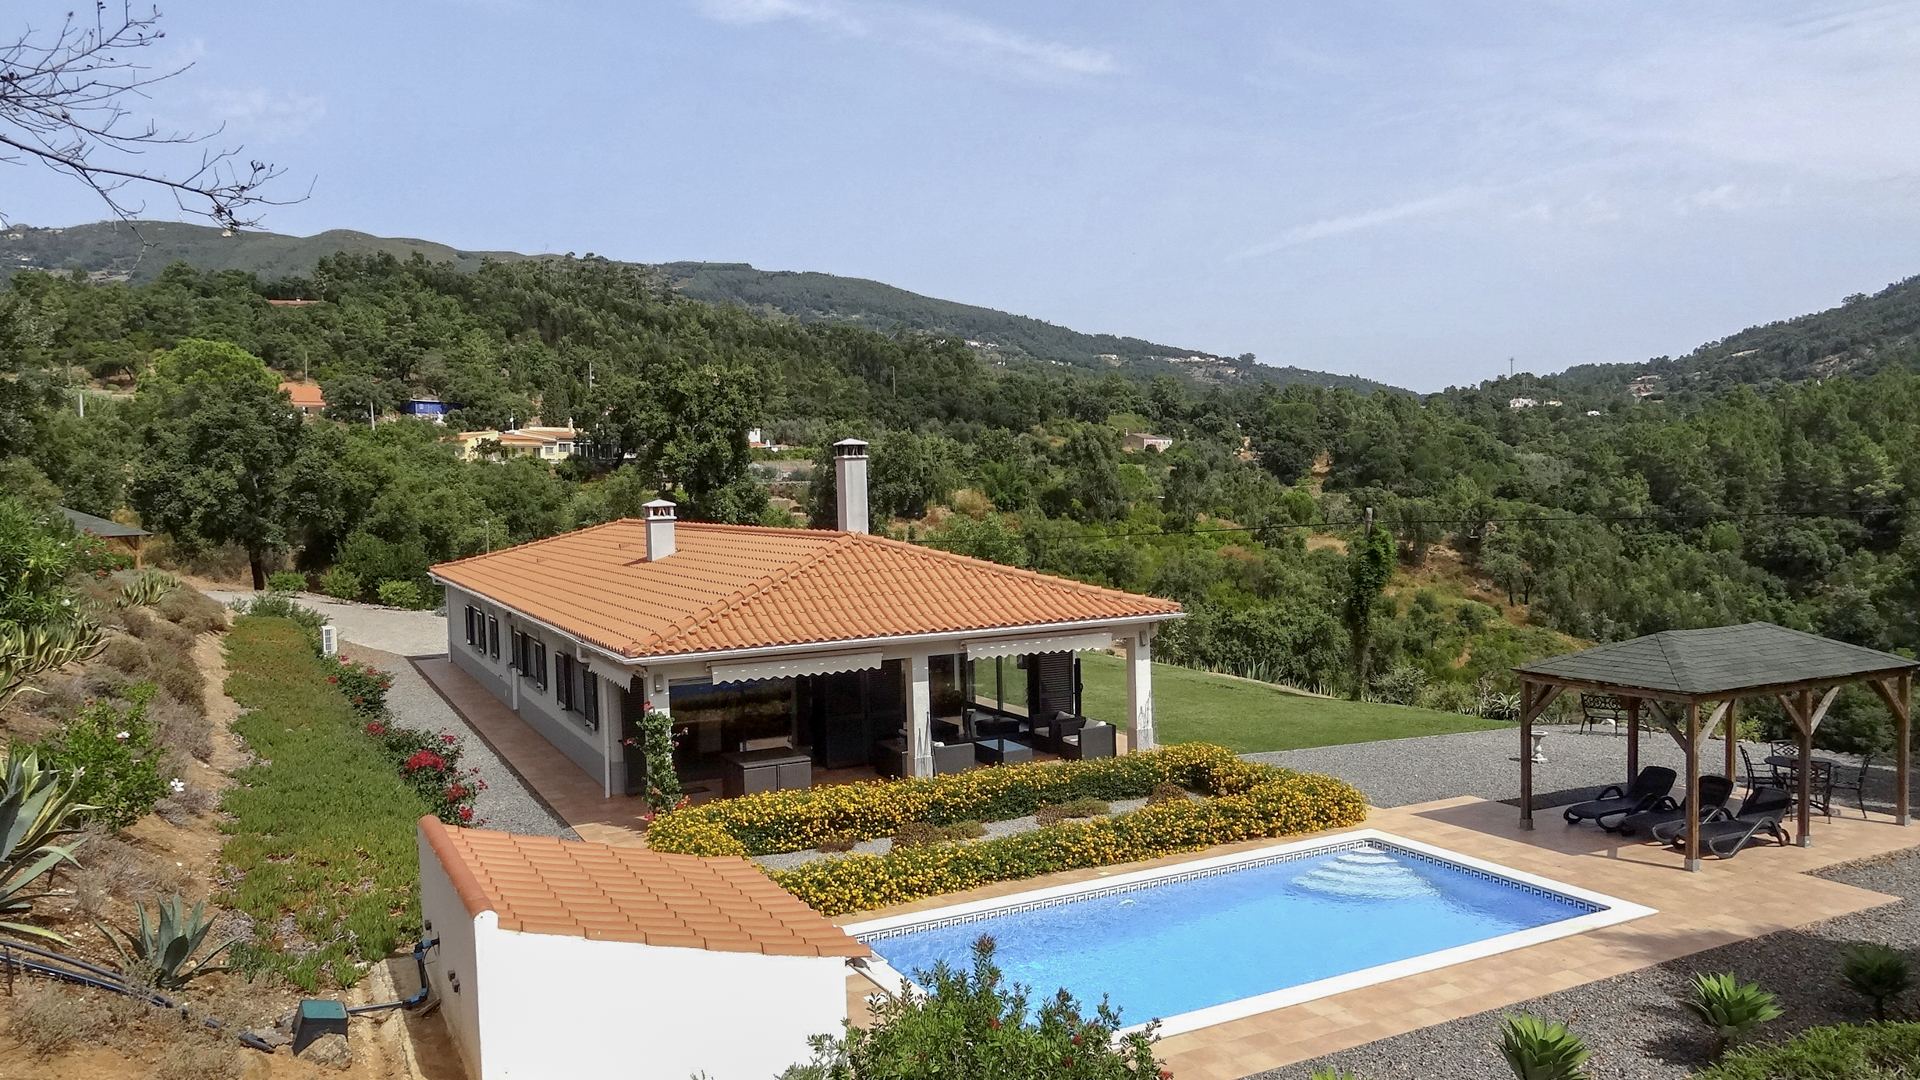 Attractive modern villa with superb views over the countryside to the mountains, Monchique, Algarve | S1958